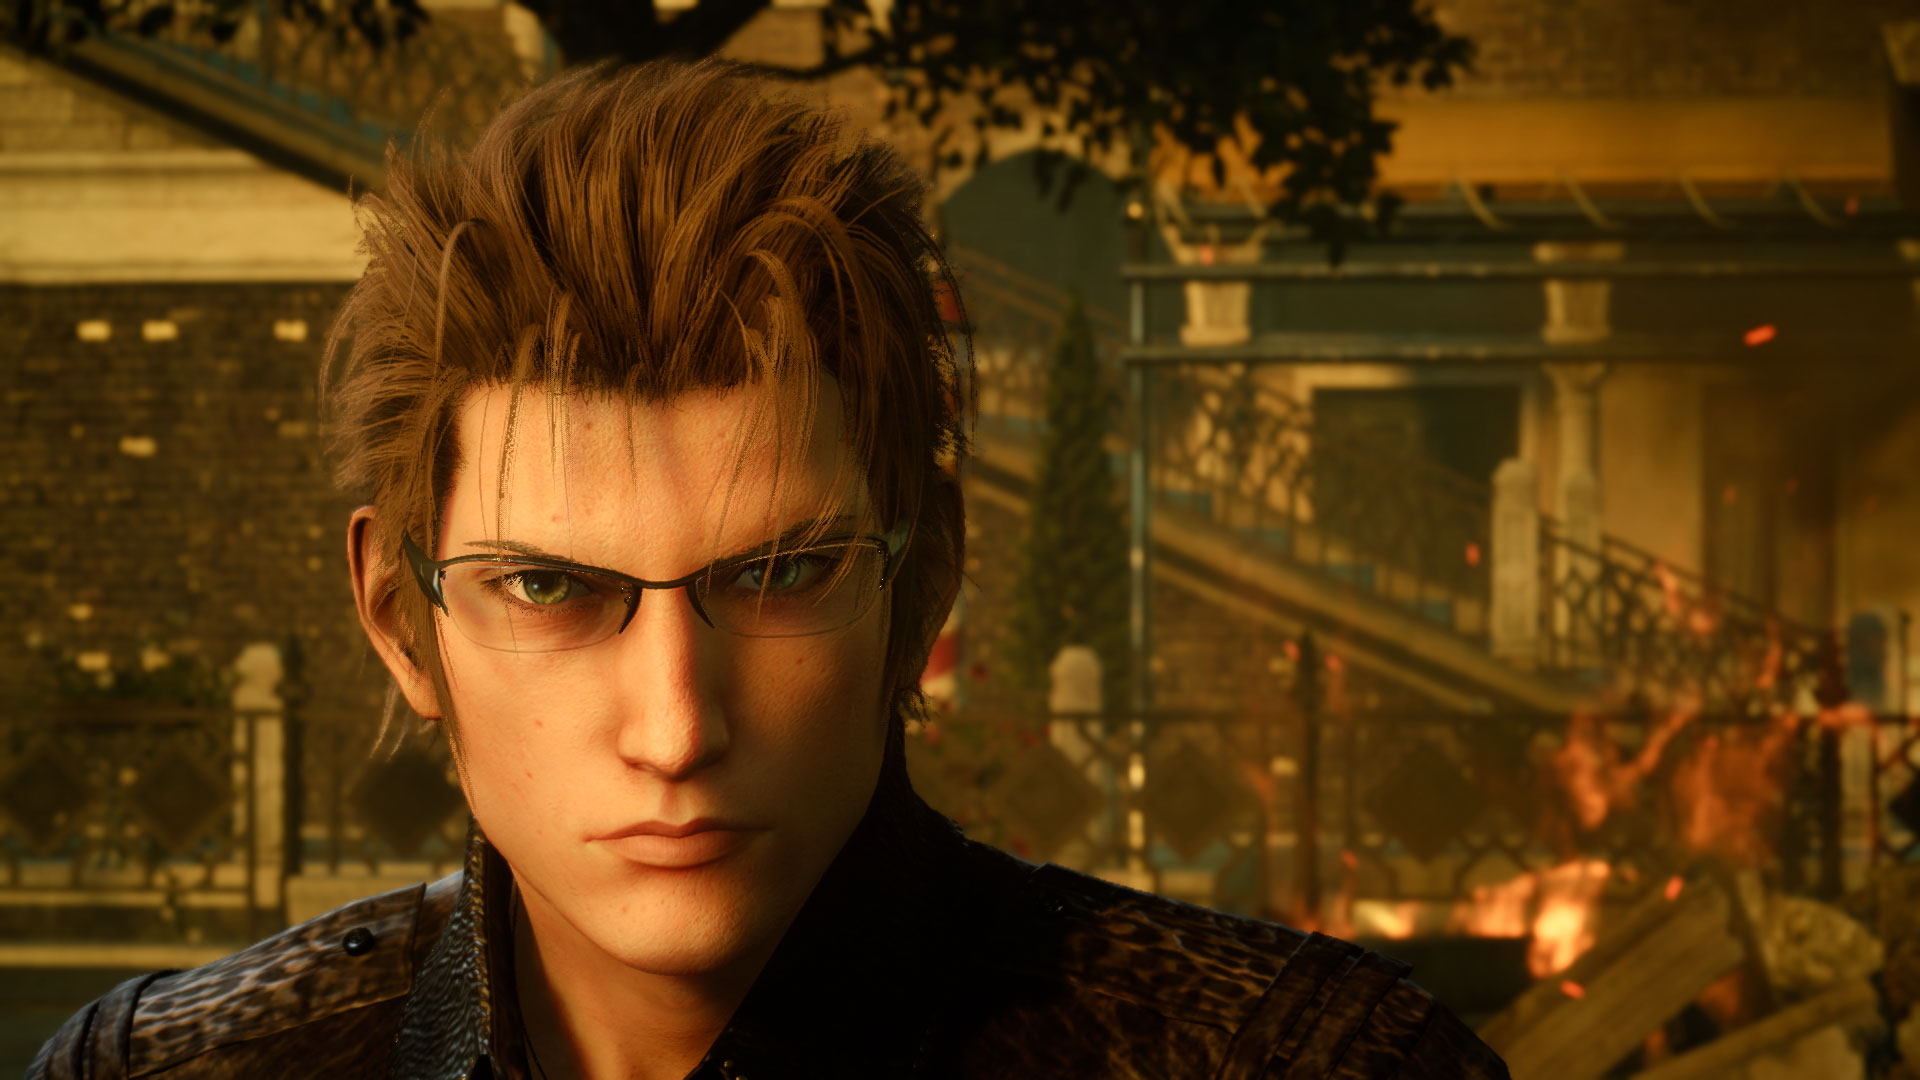 Final Fantasy XV: Episode Ignis - X35 Earthwalker